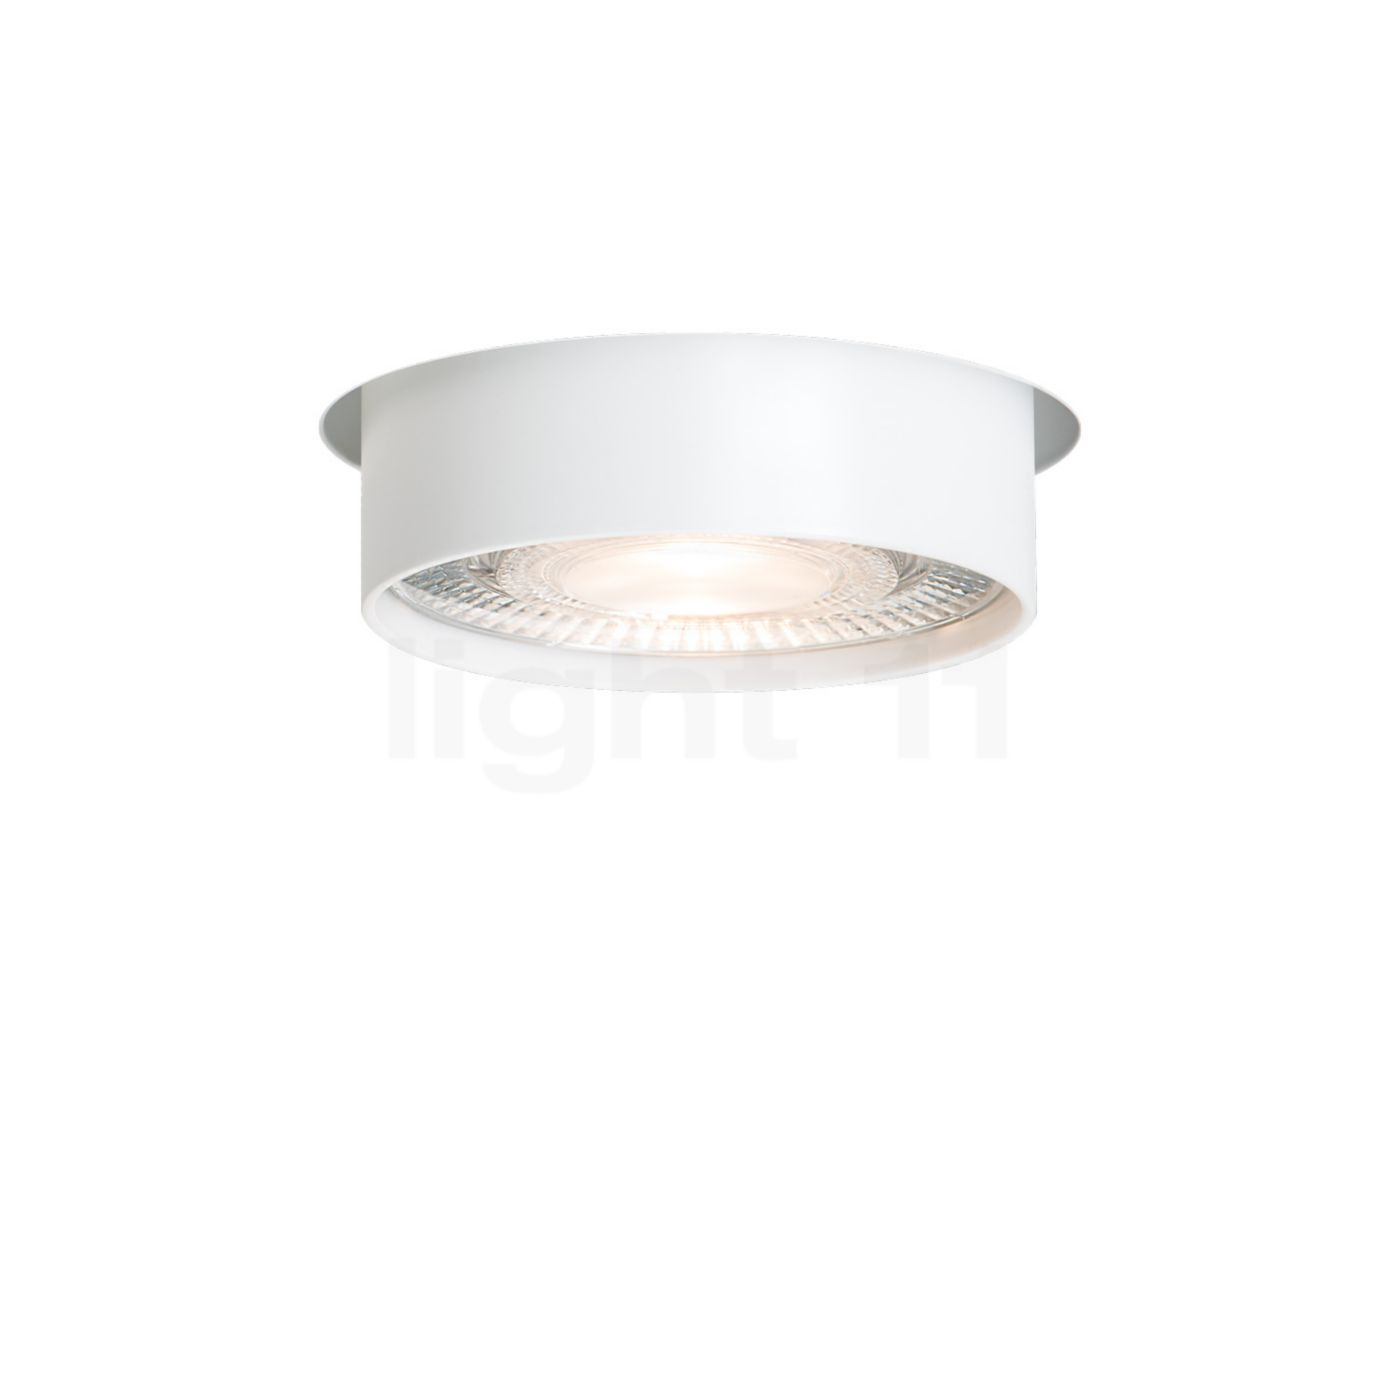 Buy Mawa Wittenberg 4.0 recessed Ceiling Light round semi-flush LED ...